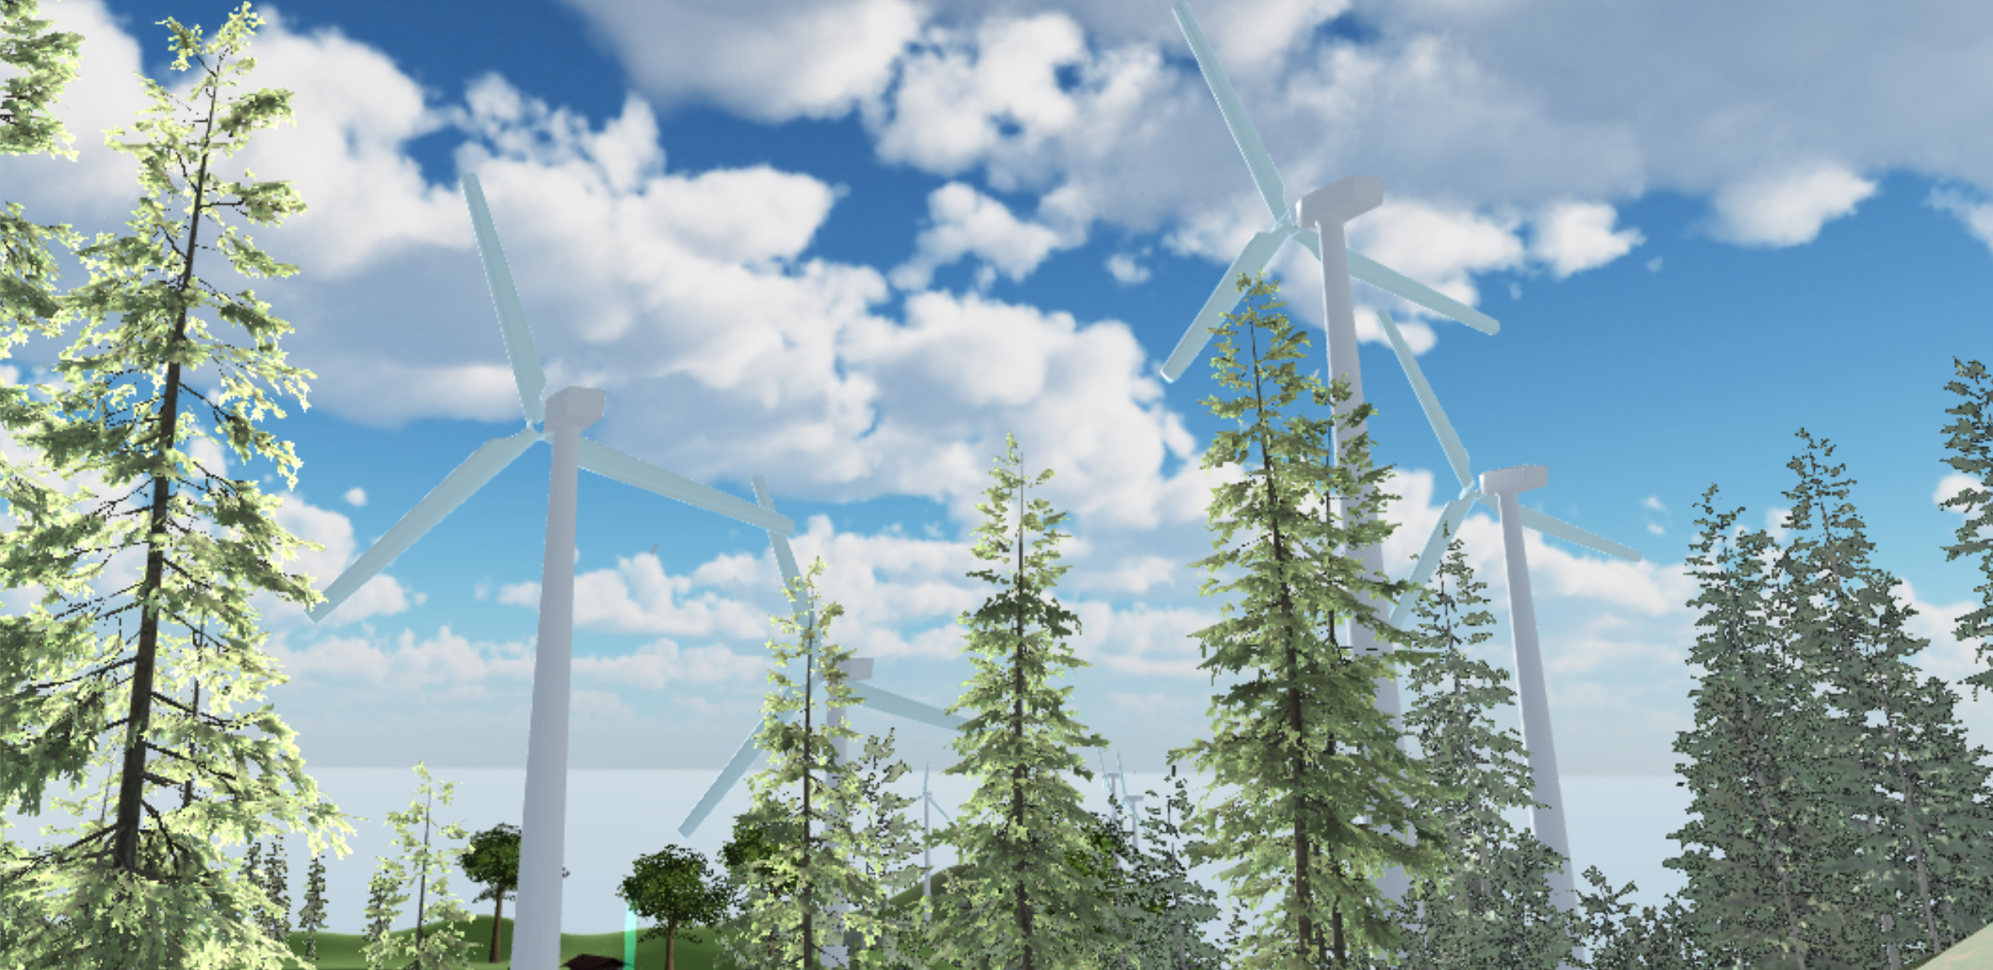 VR Sustainability Project